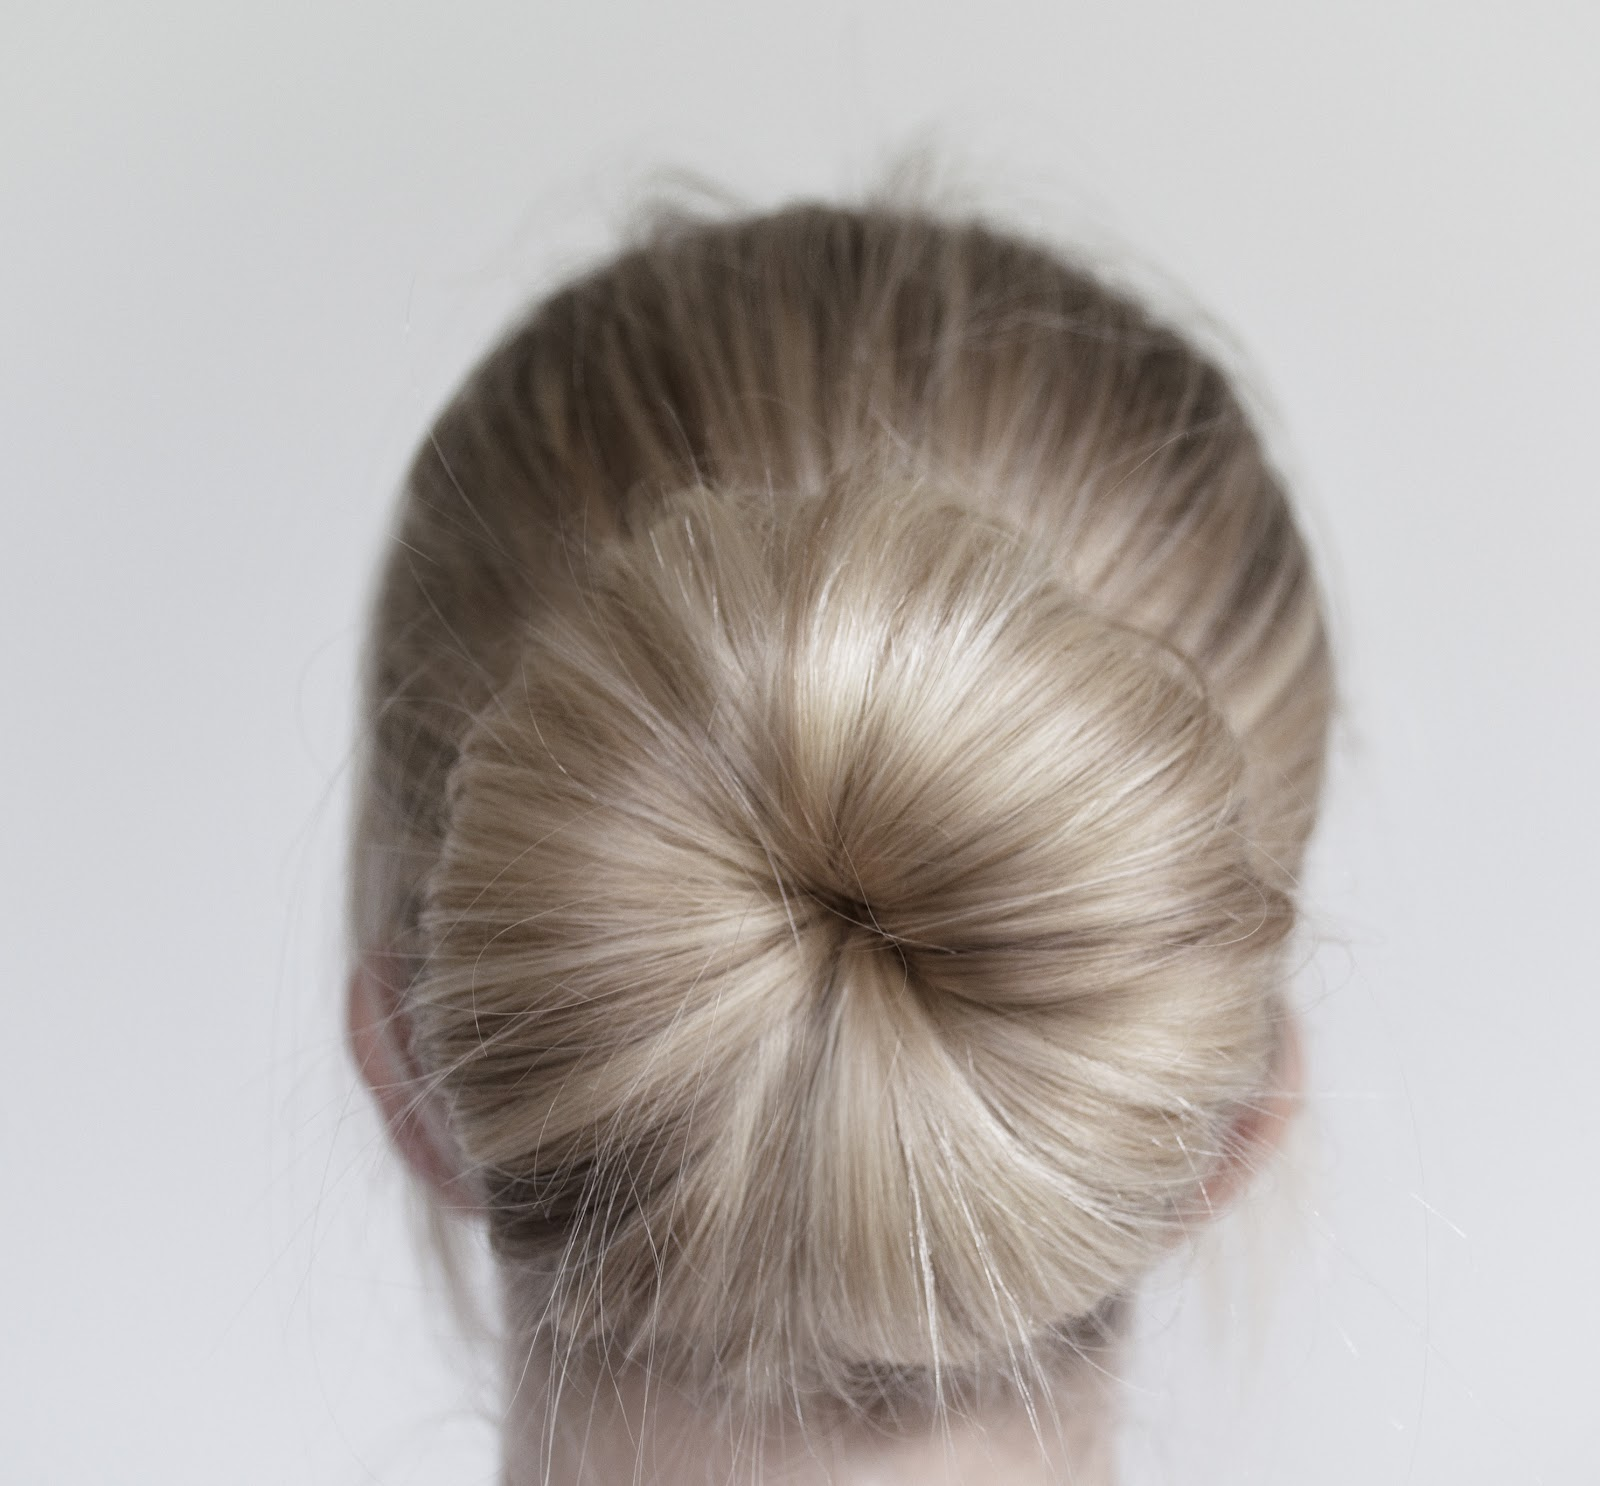 How many ways can you style a donut bun? A lovely reader Mili asked for some new ideas for wearing a donut bun. She describes her hair as shoulder length and thin and would love to know more interesting ways to style her donut bun. Well, it's no secret I'm a big fan of bun hairstyles. If you.